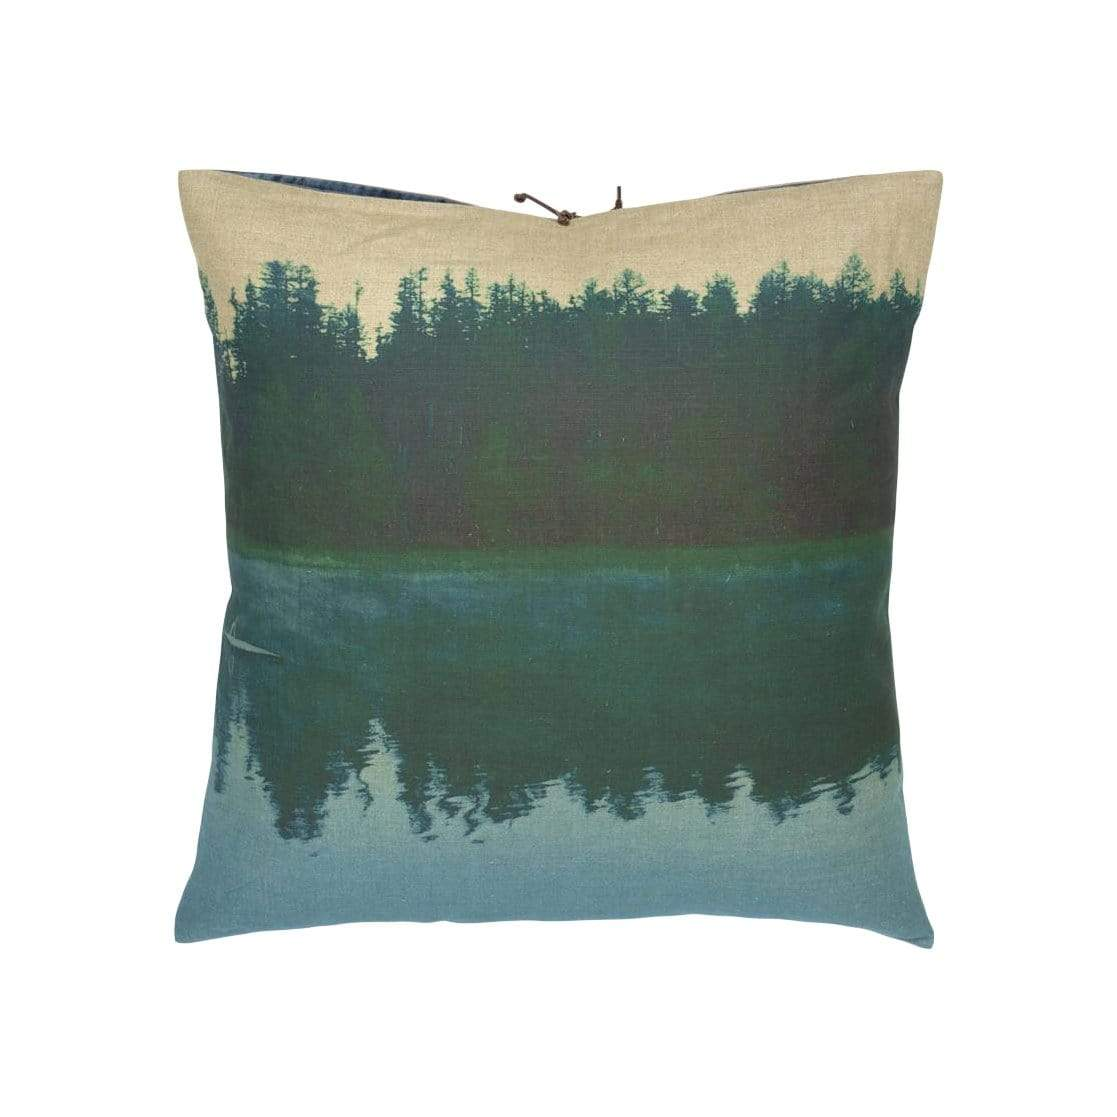 Michele Varian Cushions & Throws Default Printed Linen Pillow Pine Reflection Green